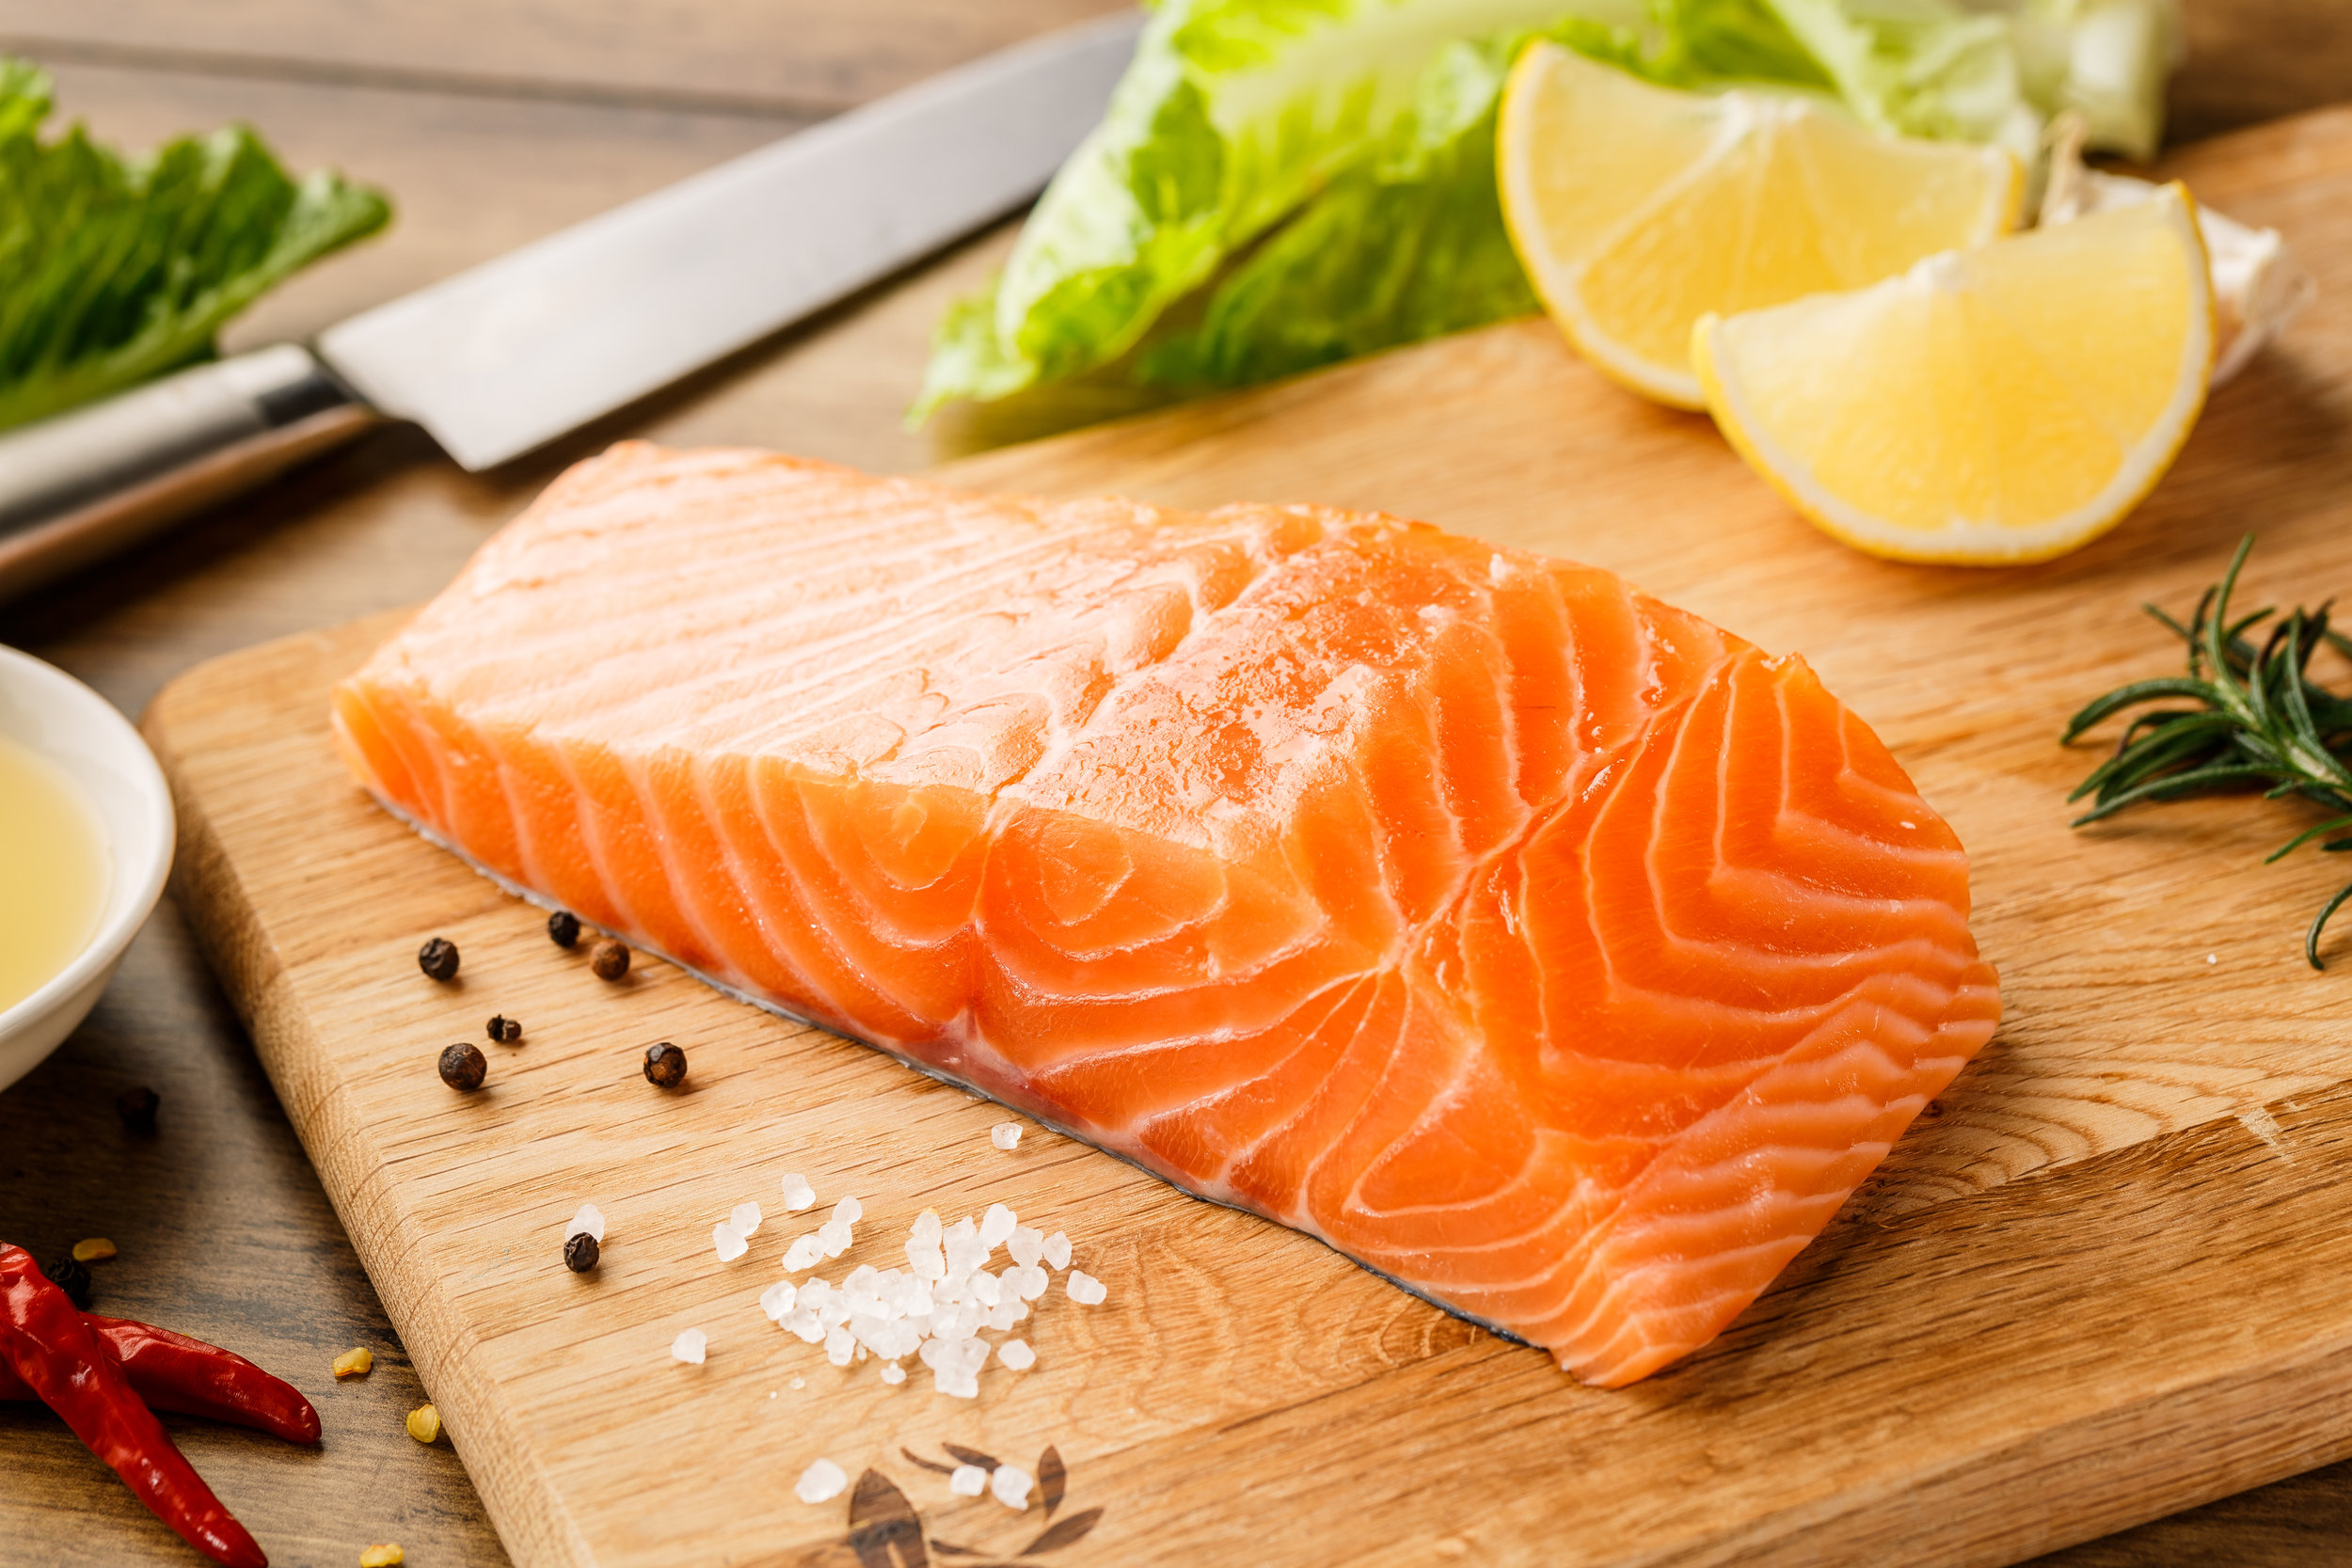 Wild salmon has a deep red color while farmed is often lighter with lots of white fat grains